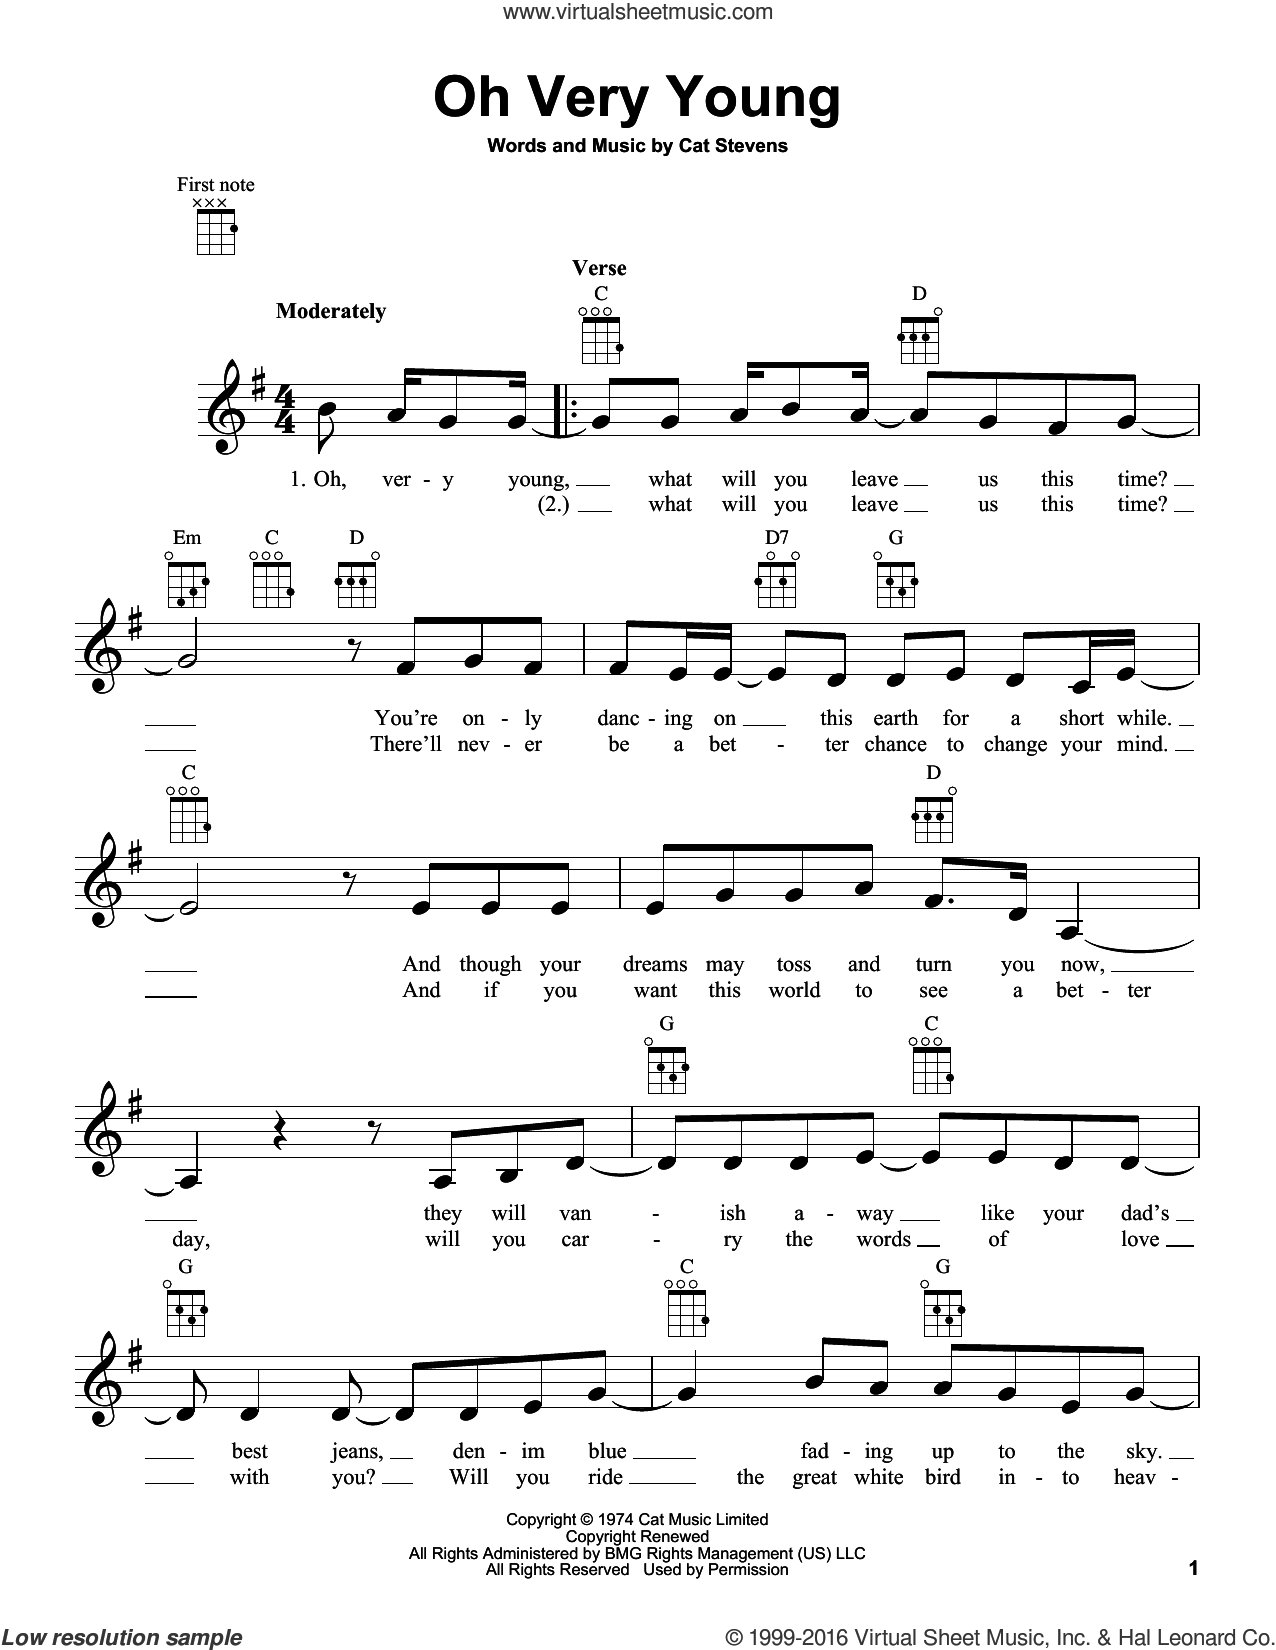 Oh Very Young sheet music for ukulele by Yusuf/Cat Stevens, Yusuf Islam and Cat Stevens, intermediate skill level